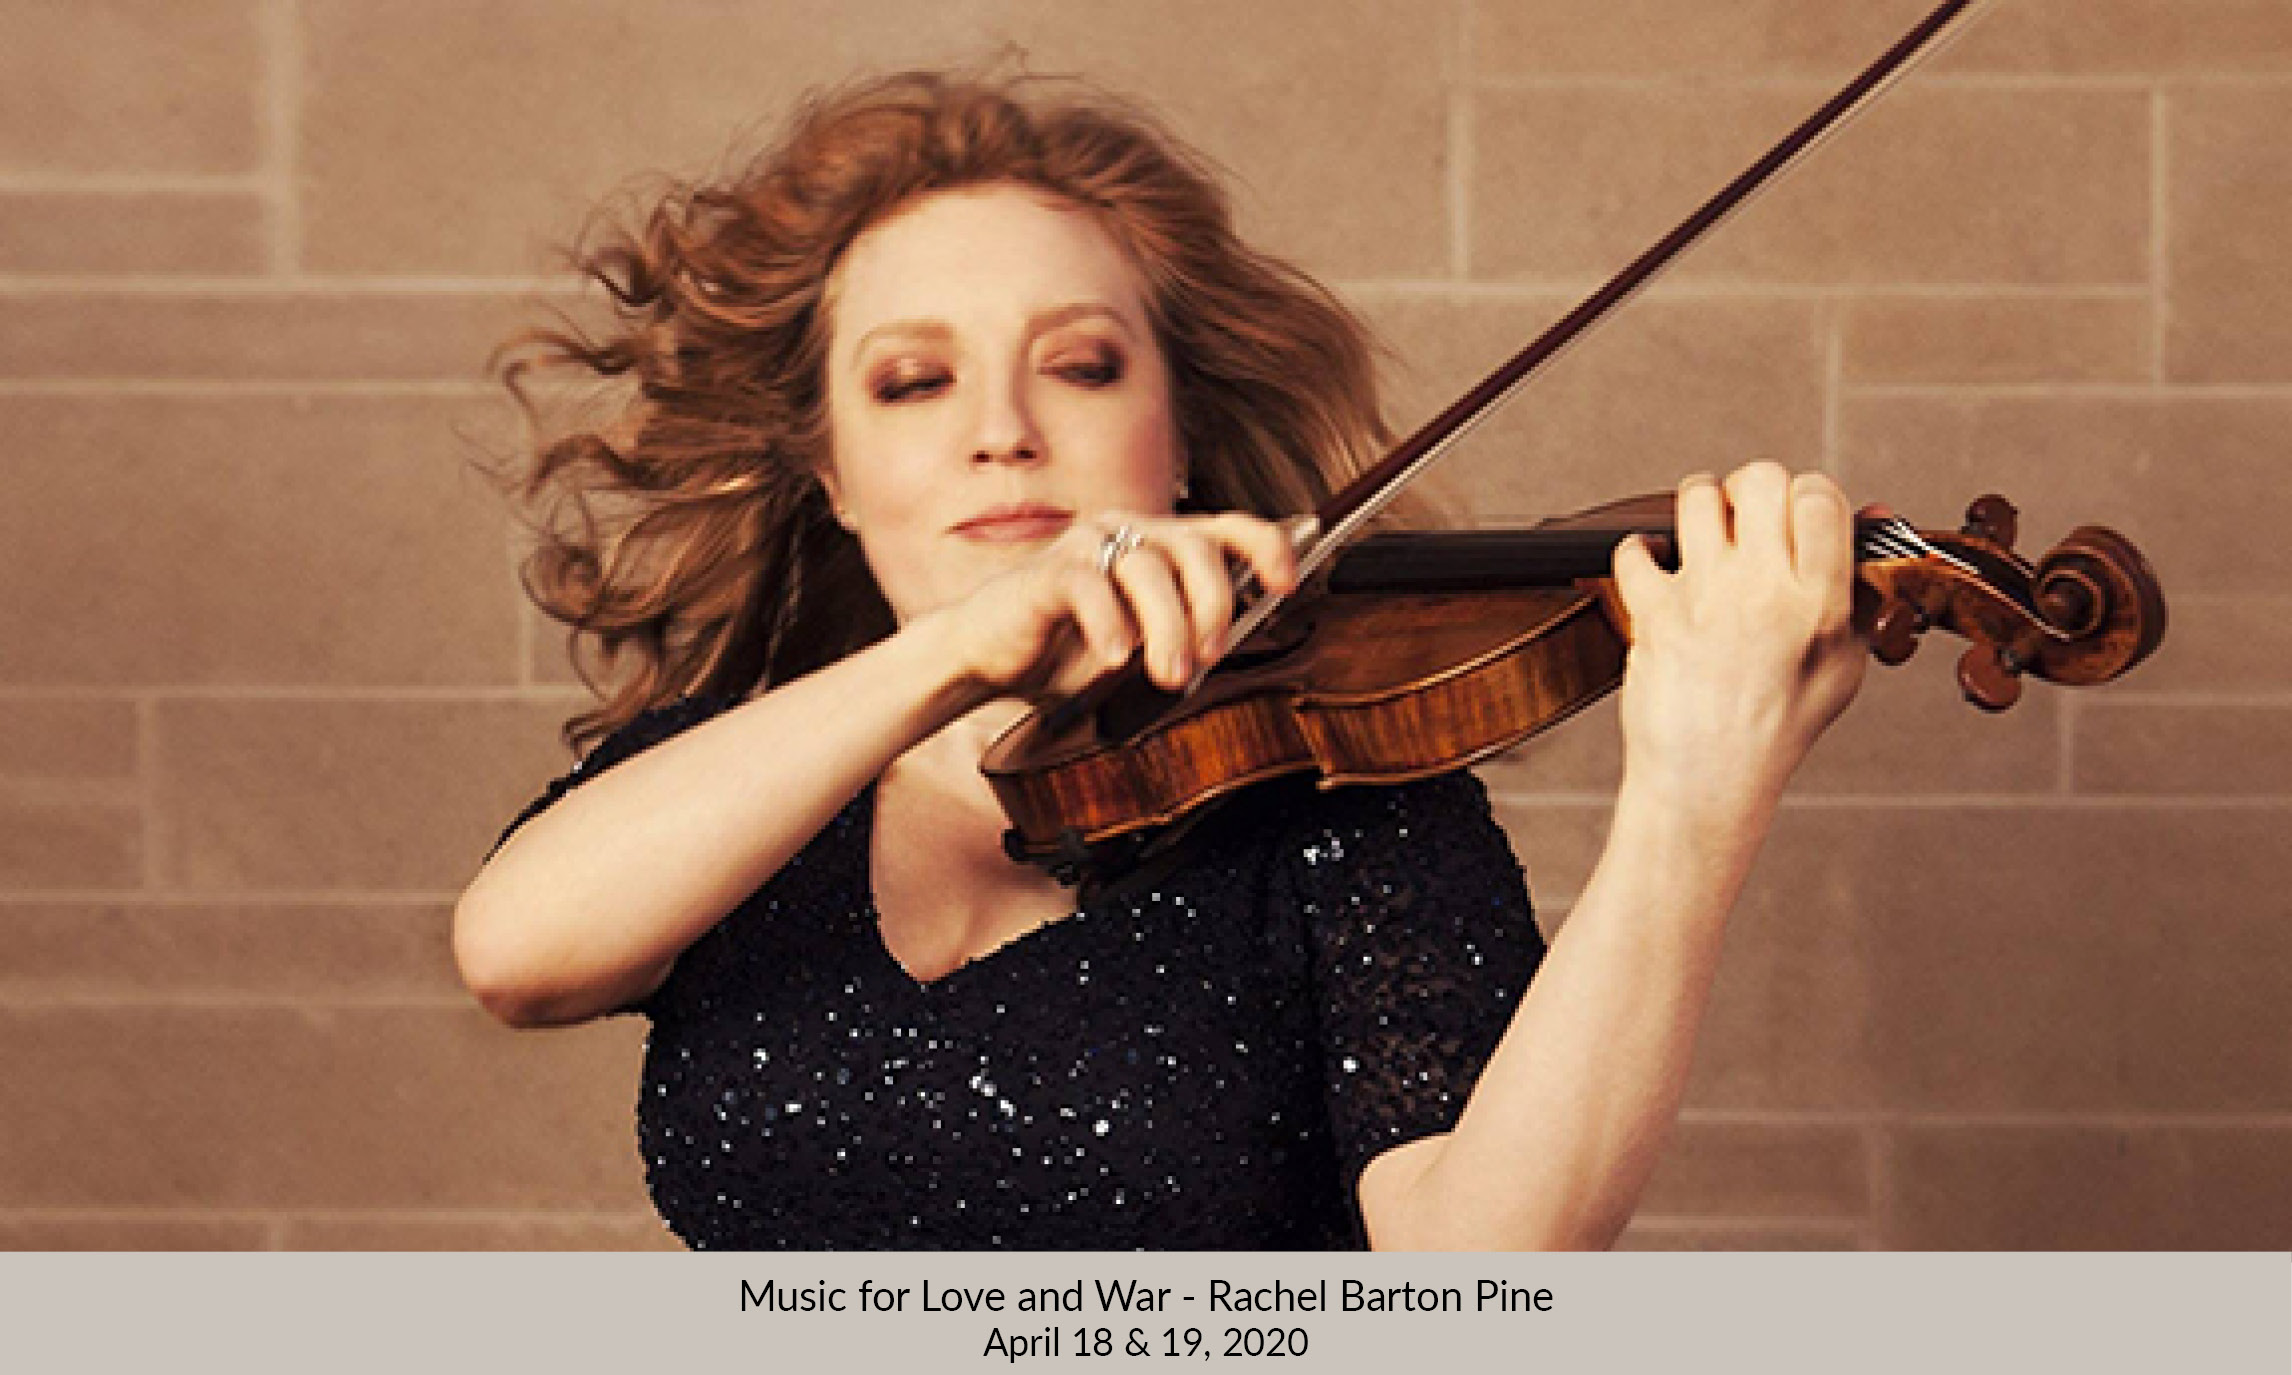 SEATTLE BAROQUE ORCHESTRA Music for Love and War – Rachel Barton Pine,  violin soloist » Early Music America